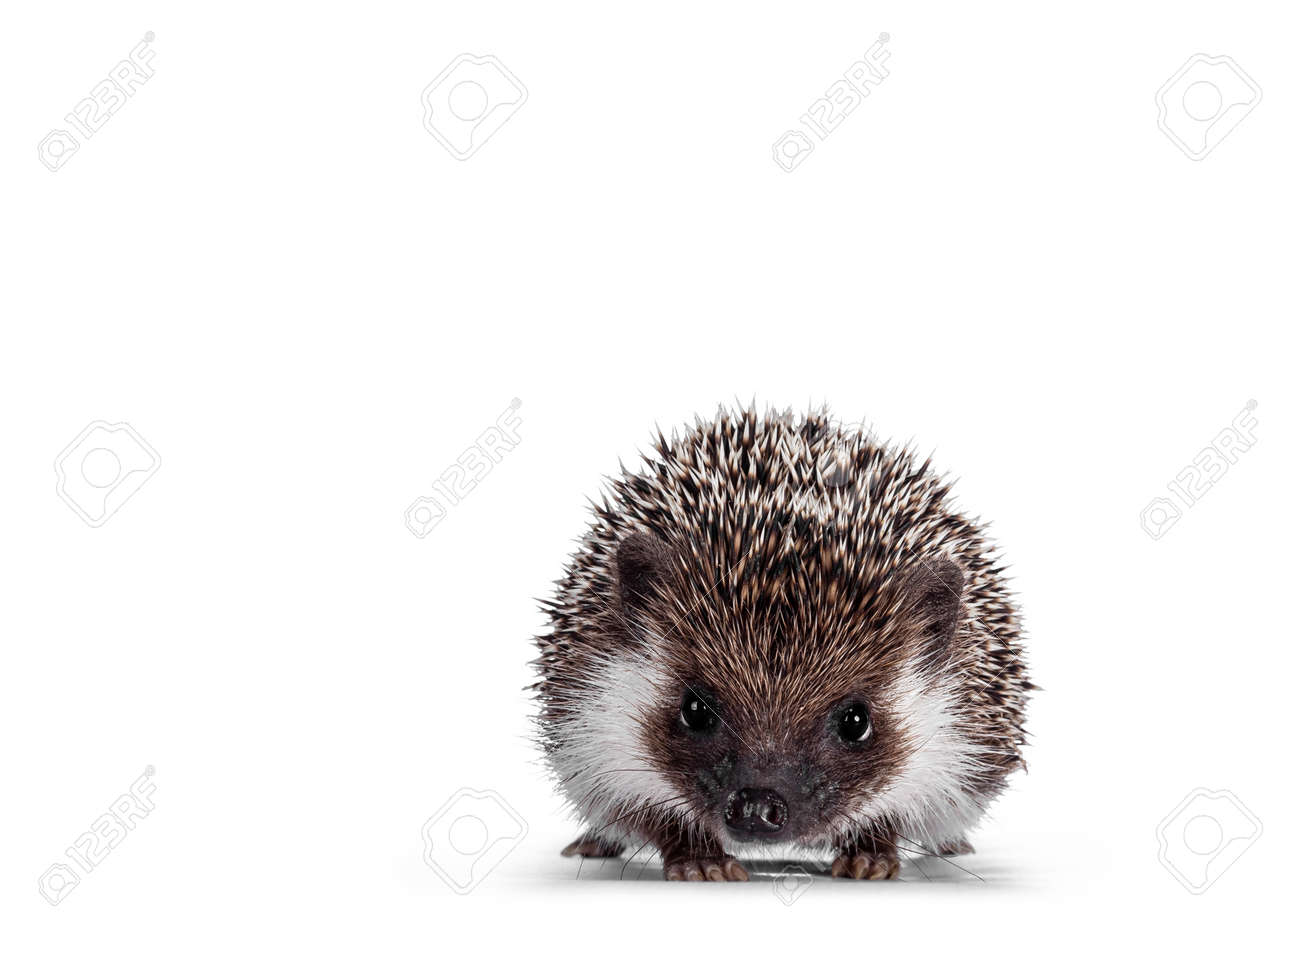 Cute full mask African Pygme Hedgehog, standing facing front. Looking straight to camera. Isolated on white background. - 173424714